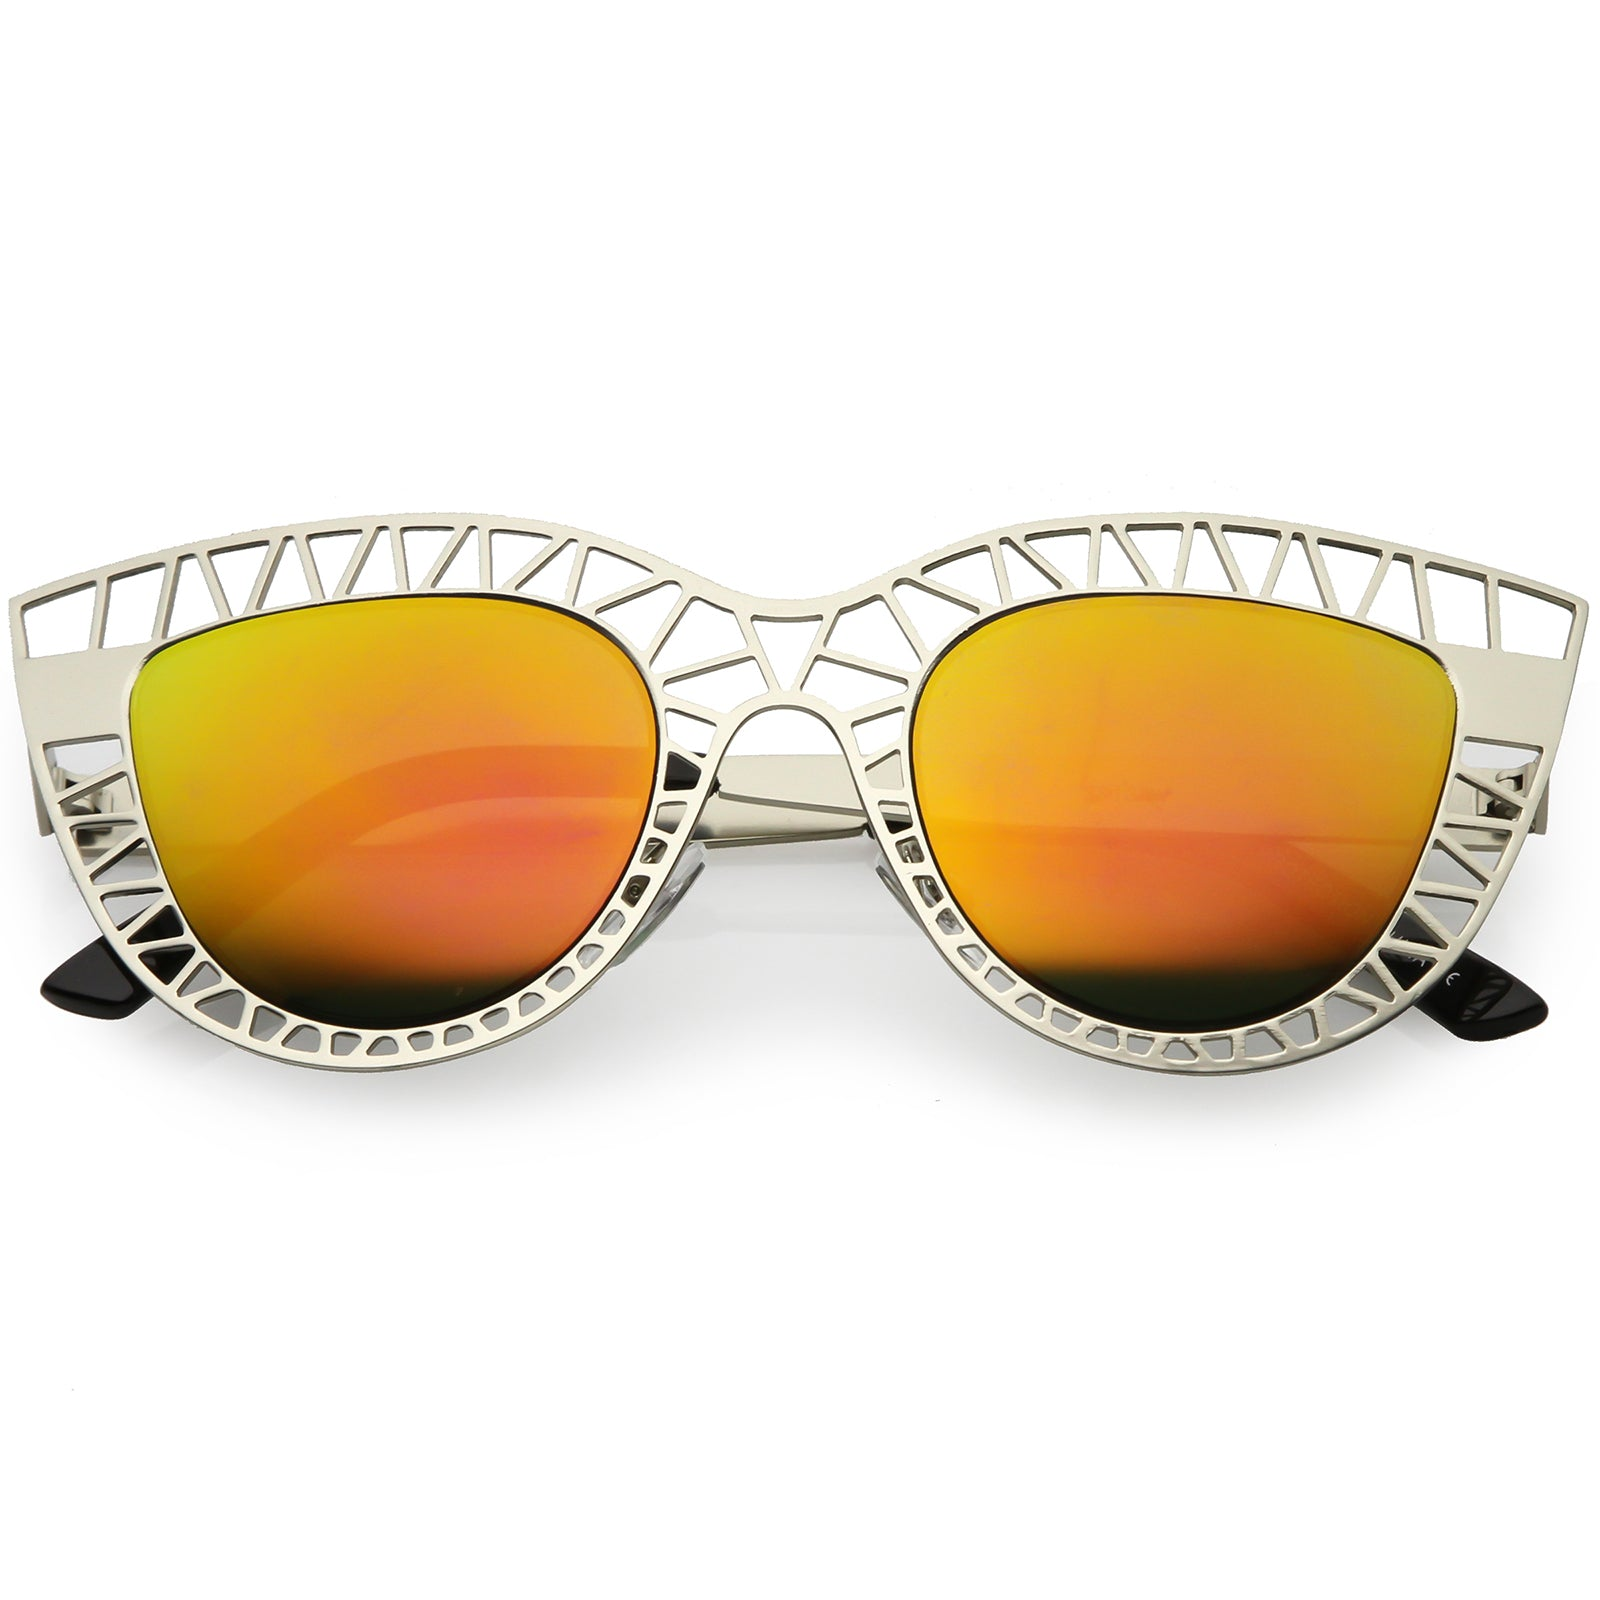 1758c8ccd338a Unique Laser Cut Out Cat Eye Sunglasses With Color Mirrored Lens ...